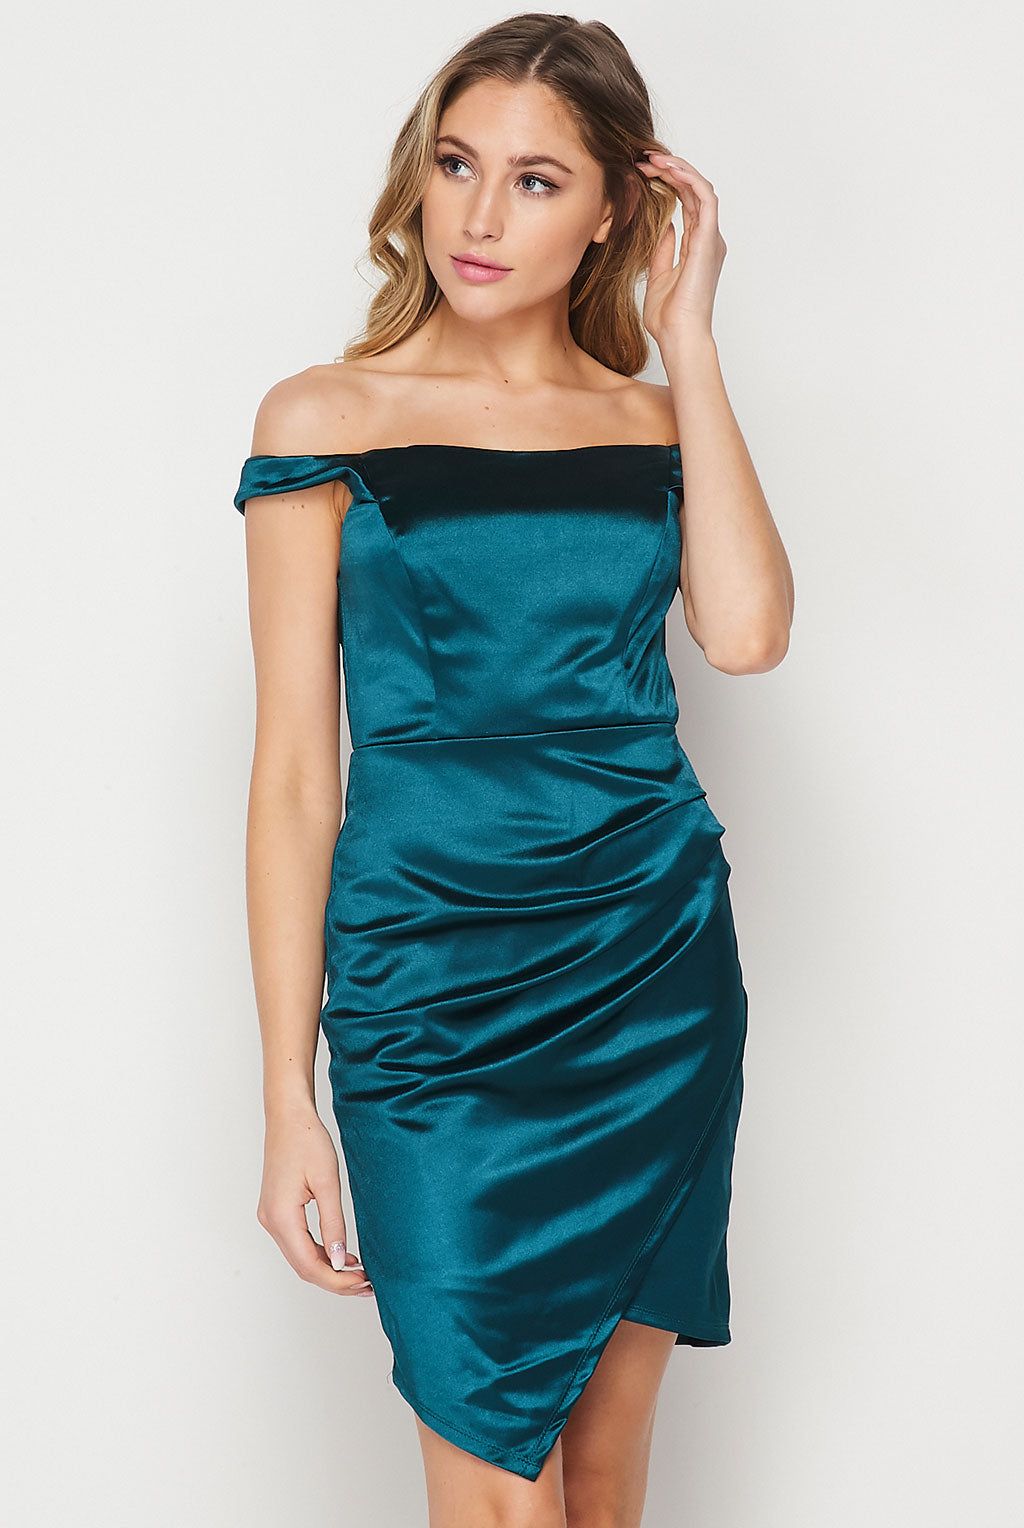 Teeze Me | Off The Shoulder Satin Drape Skirt Dress | Emerald